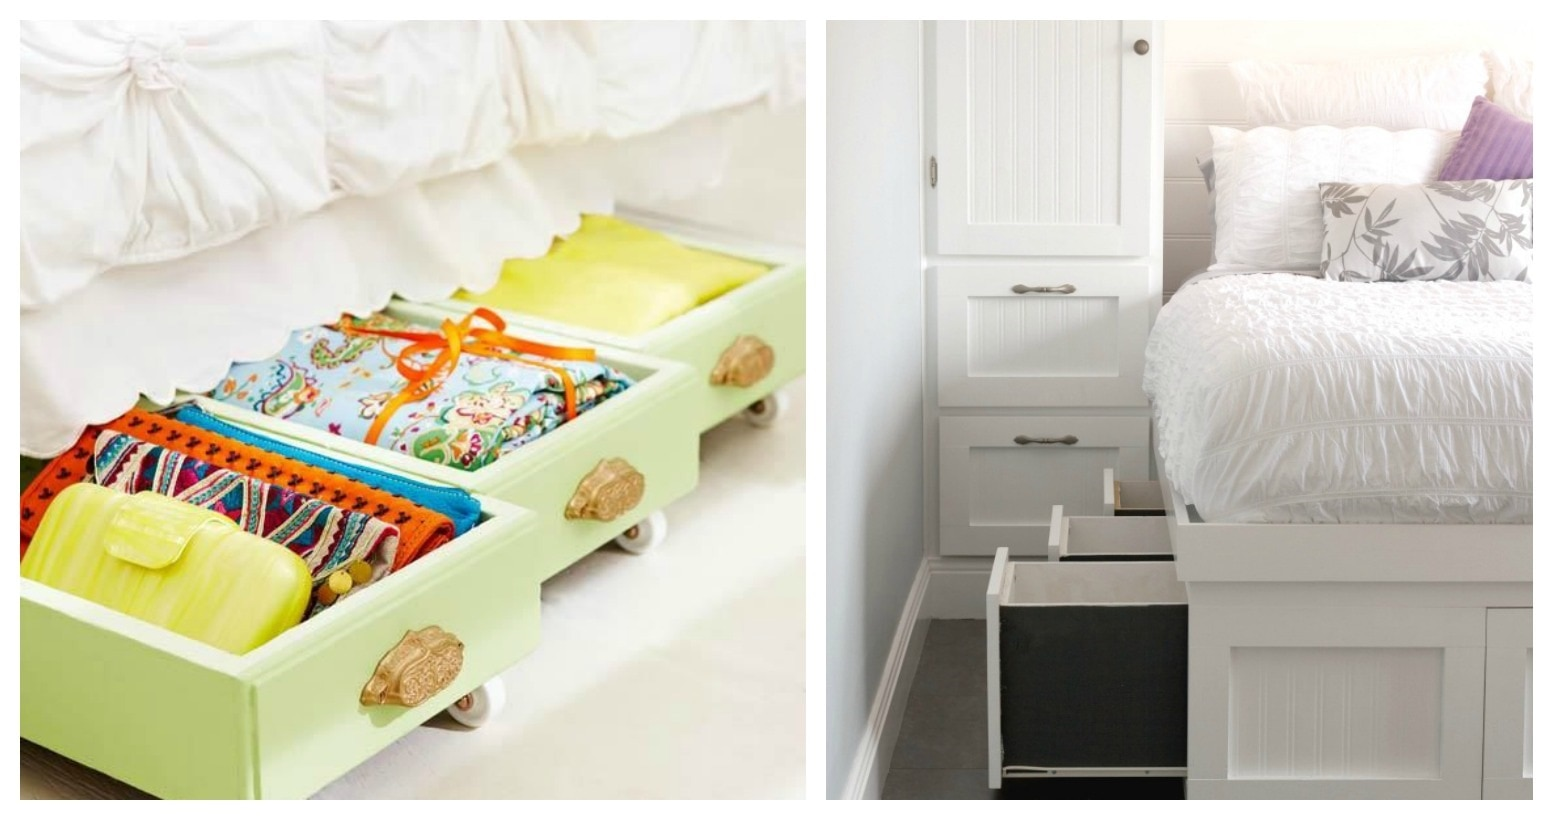 Ideas To Organize A Small Bedroom Part - 42: How To Make The Most Of Small Bedroom Storage | Thegoodstuff